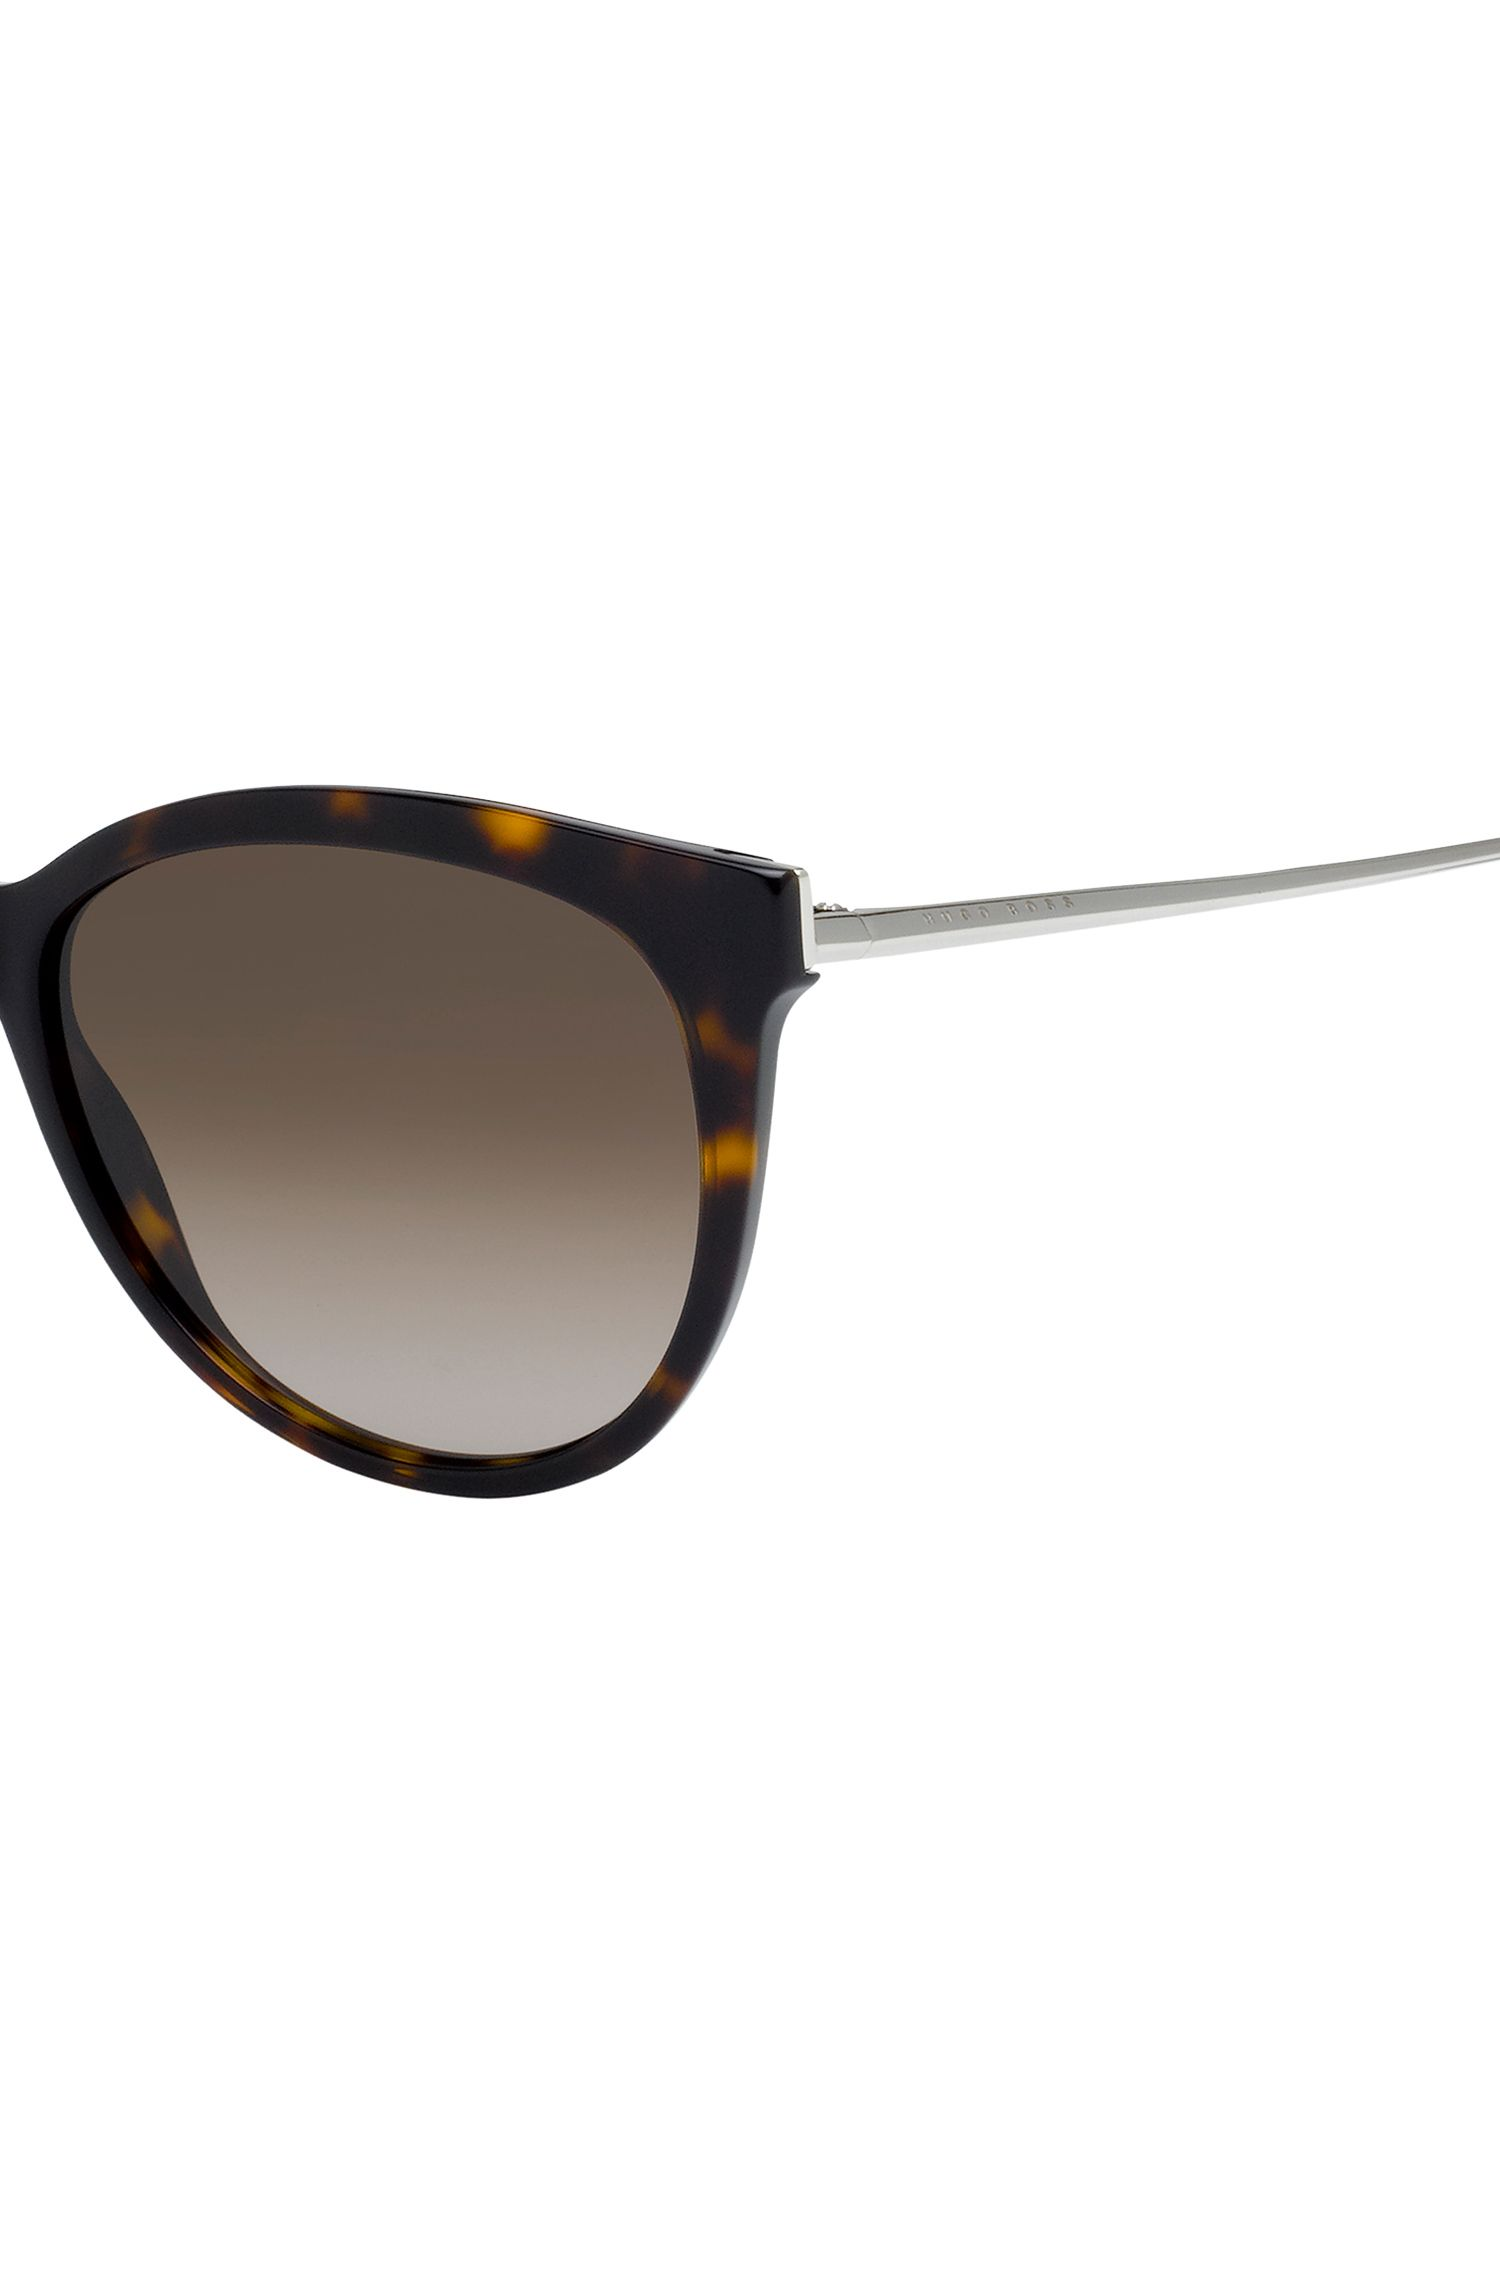 Tortoiseshell Cat-Eye Sunglasses | BOSS 0892S